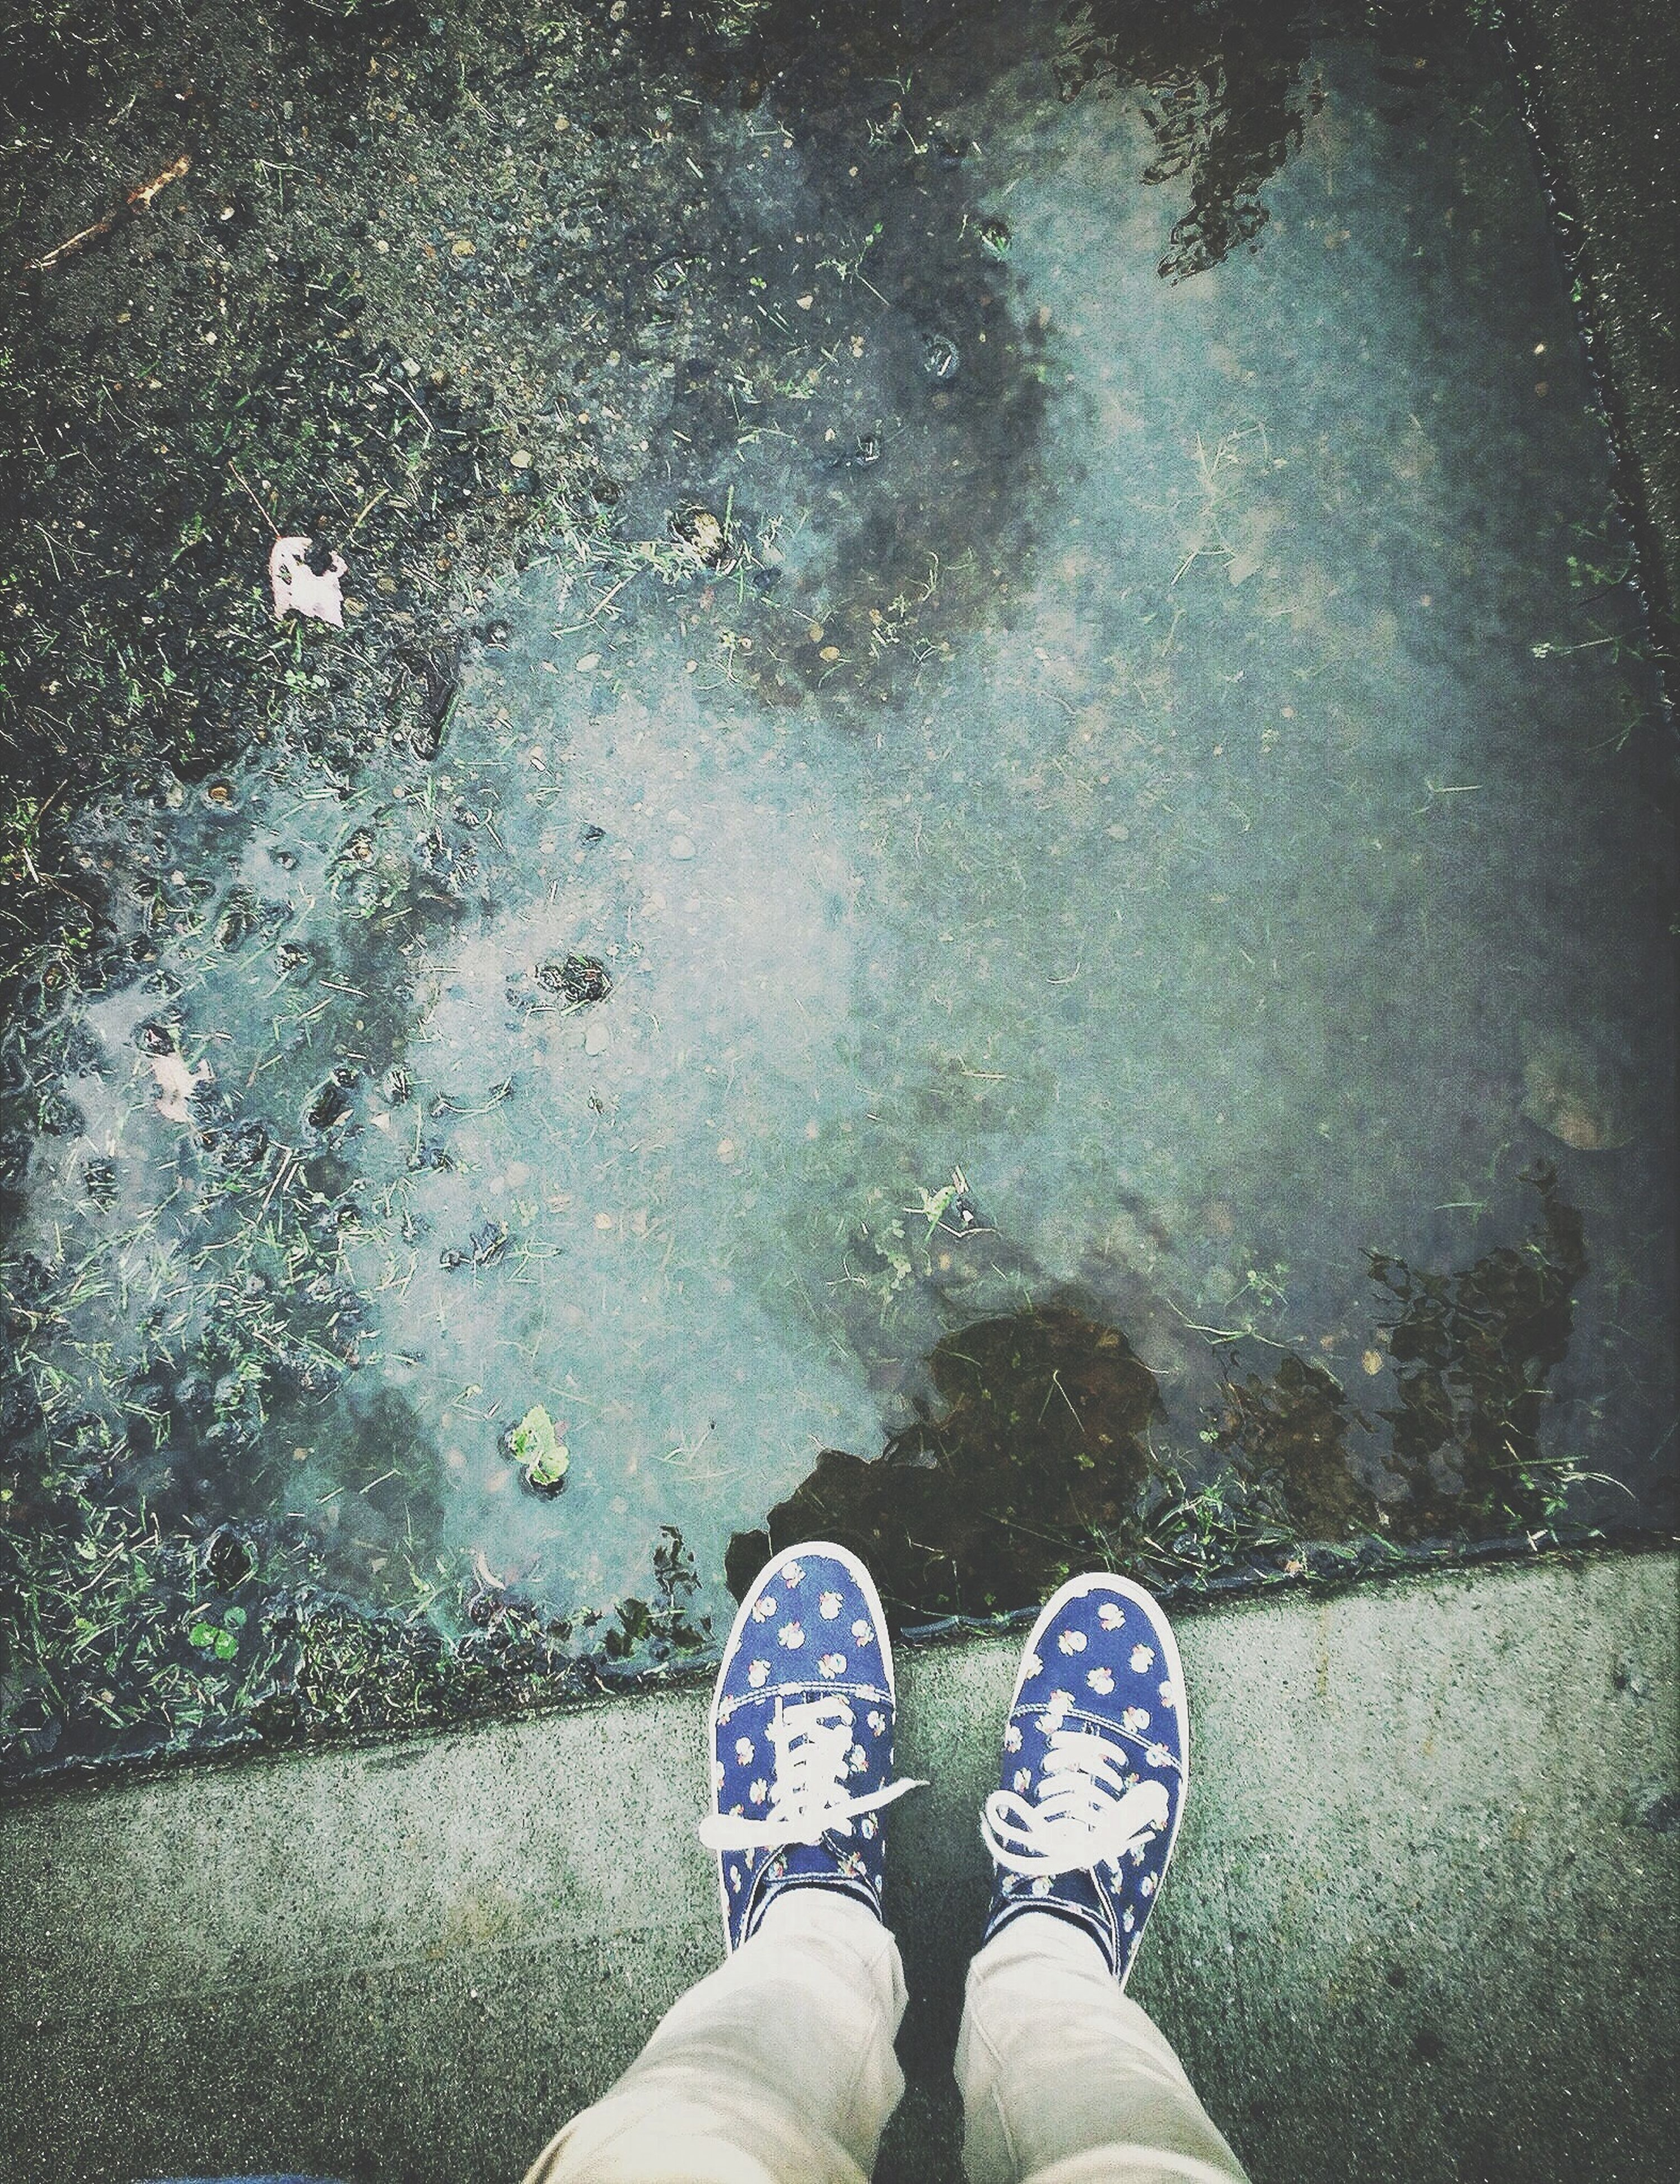 low section, person, personal perspective, shoe, water, wet, standing, human foot, rain, lifestyles, street, season, puddle, reflection, high angle view, footwear, men